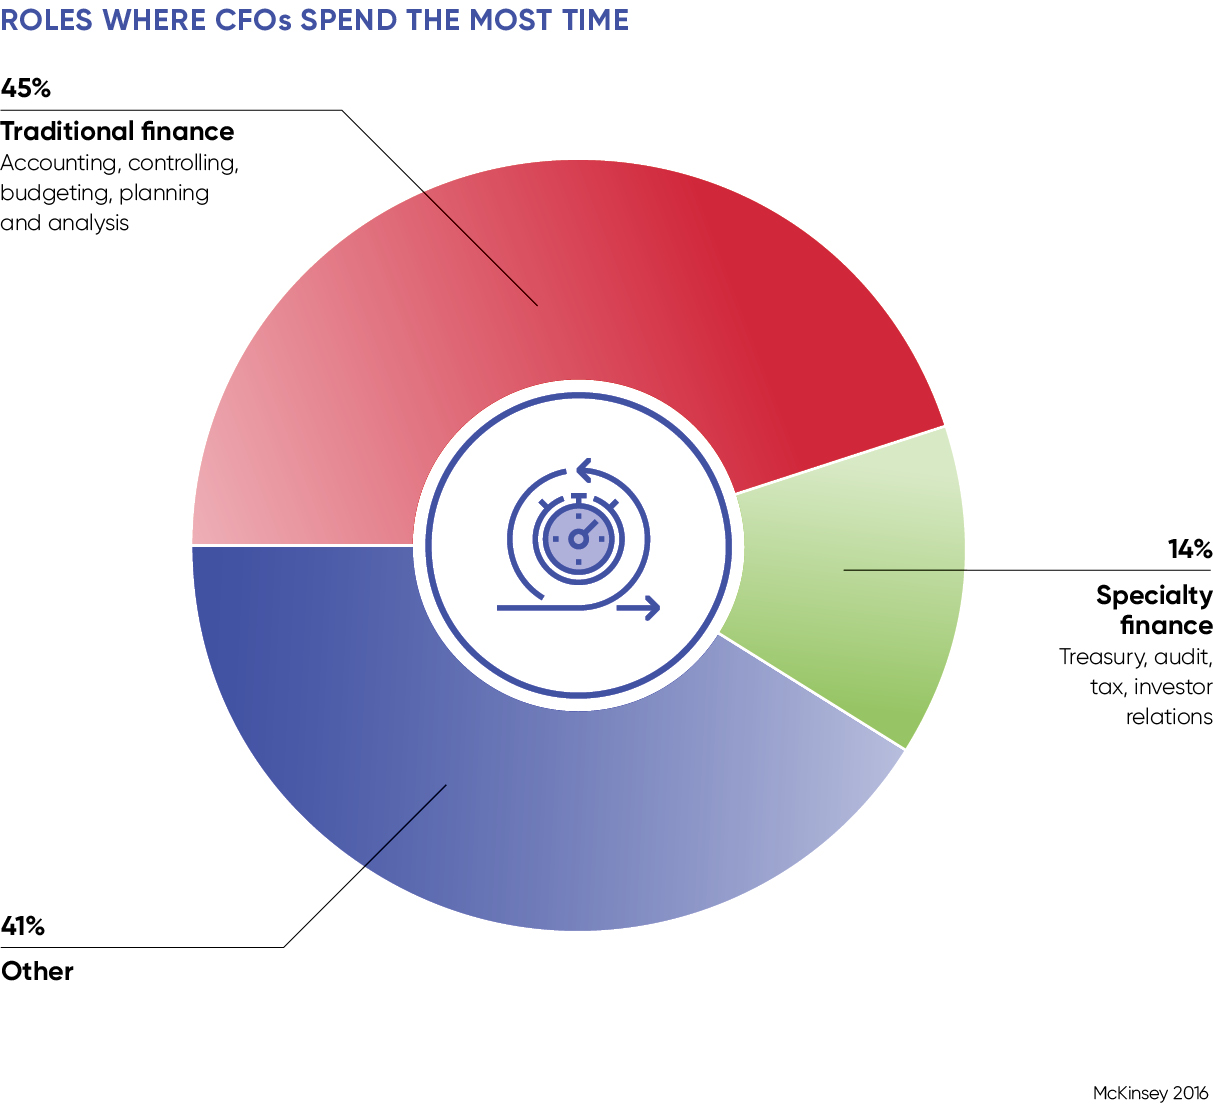 Where CFOs spend the most time